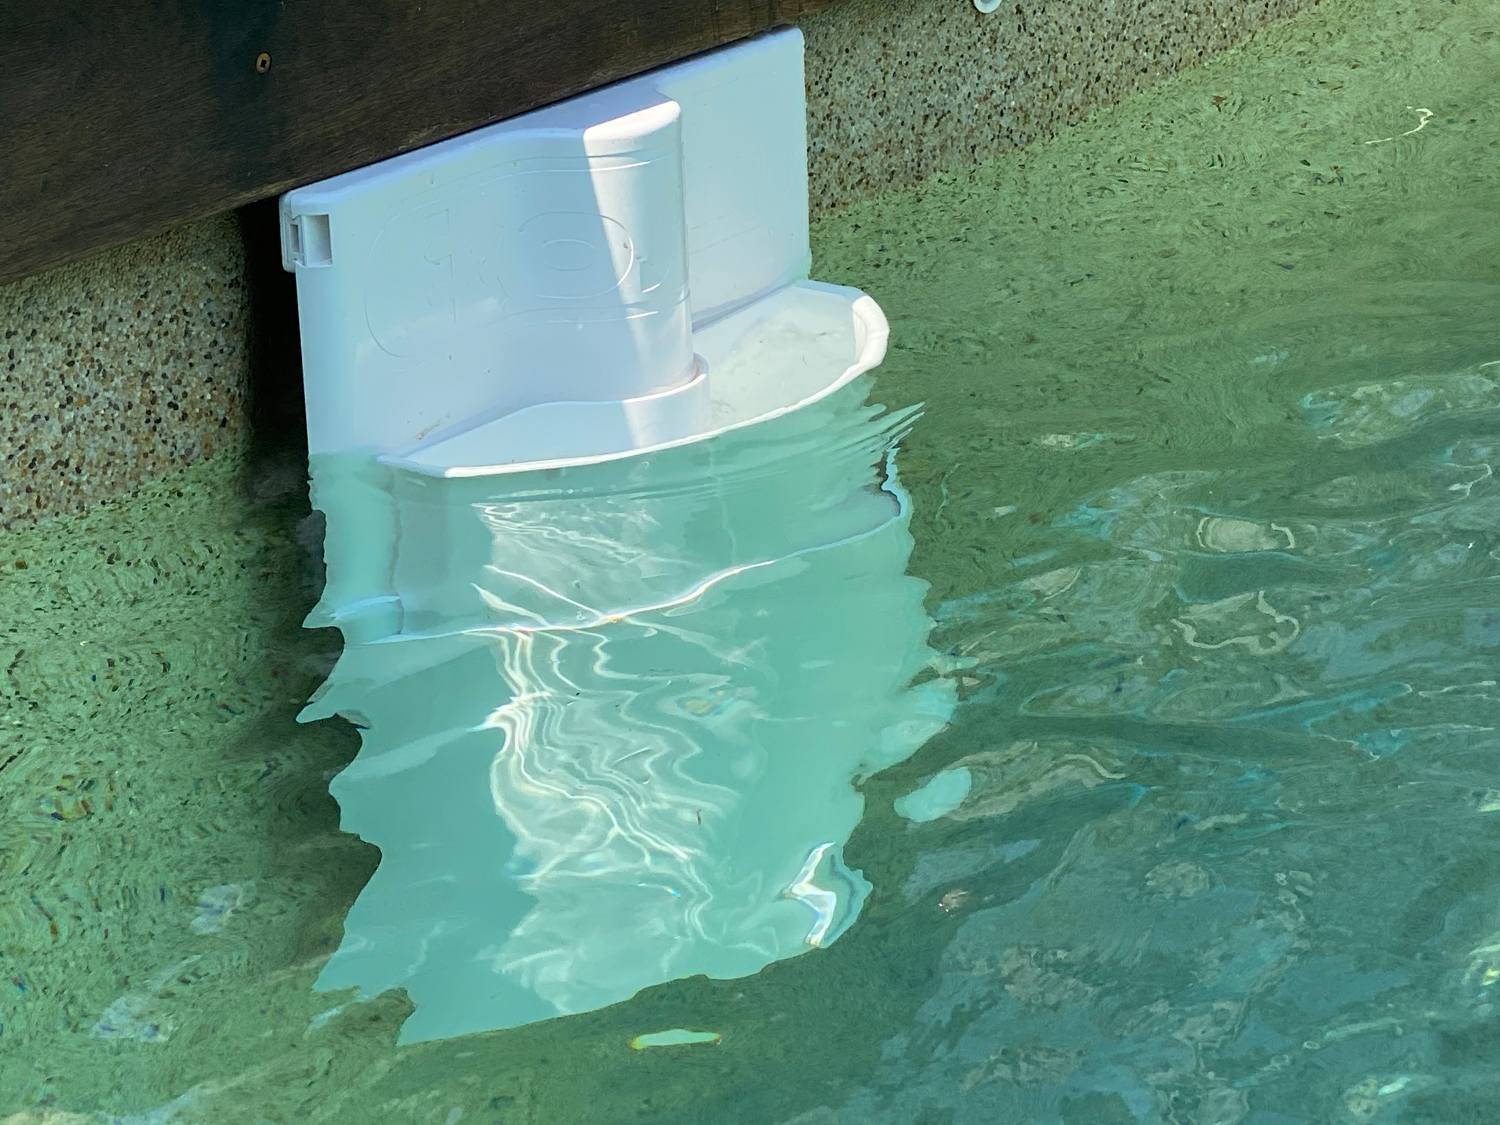 A new self-levelling skimmer offers a water smart solution for your pool